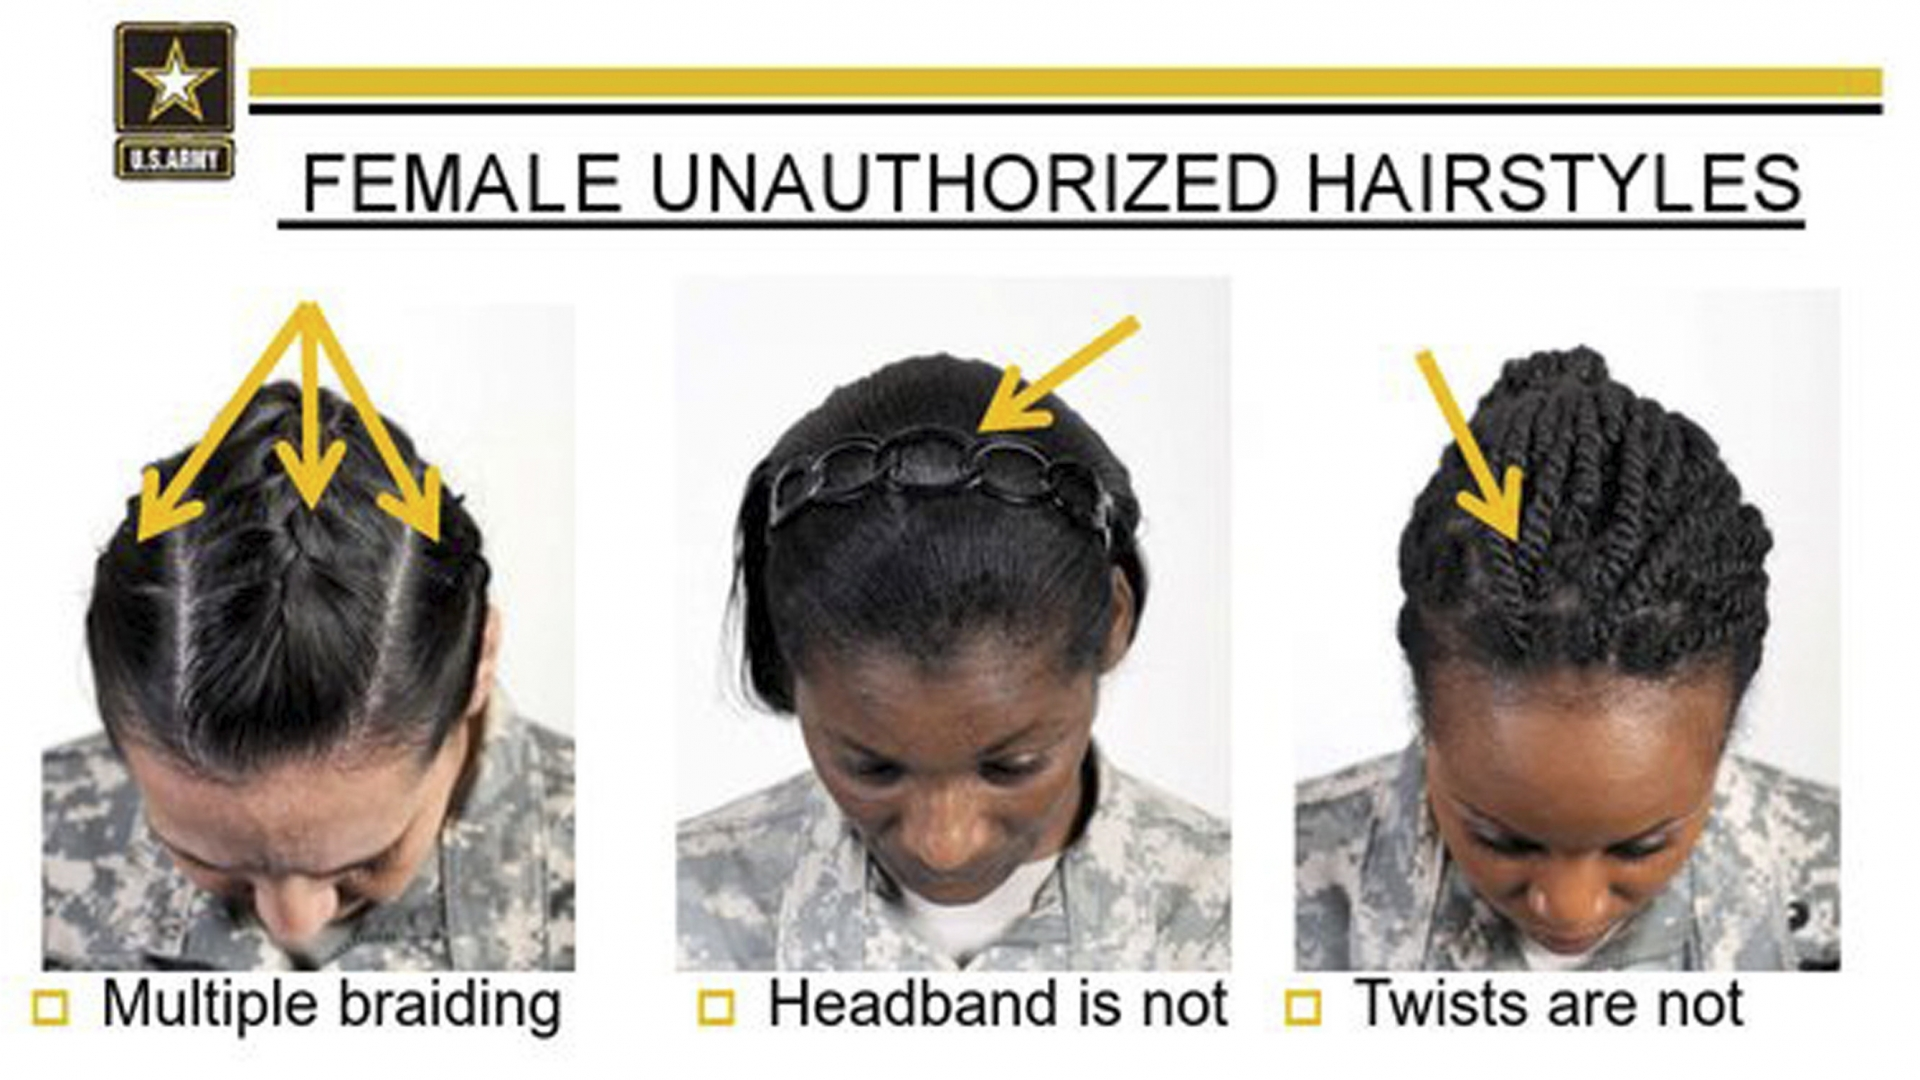 (Credit: US Army/The New York Times/Redux)